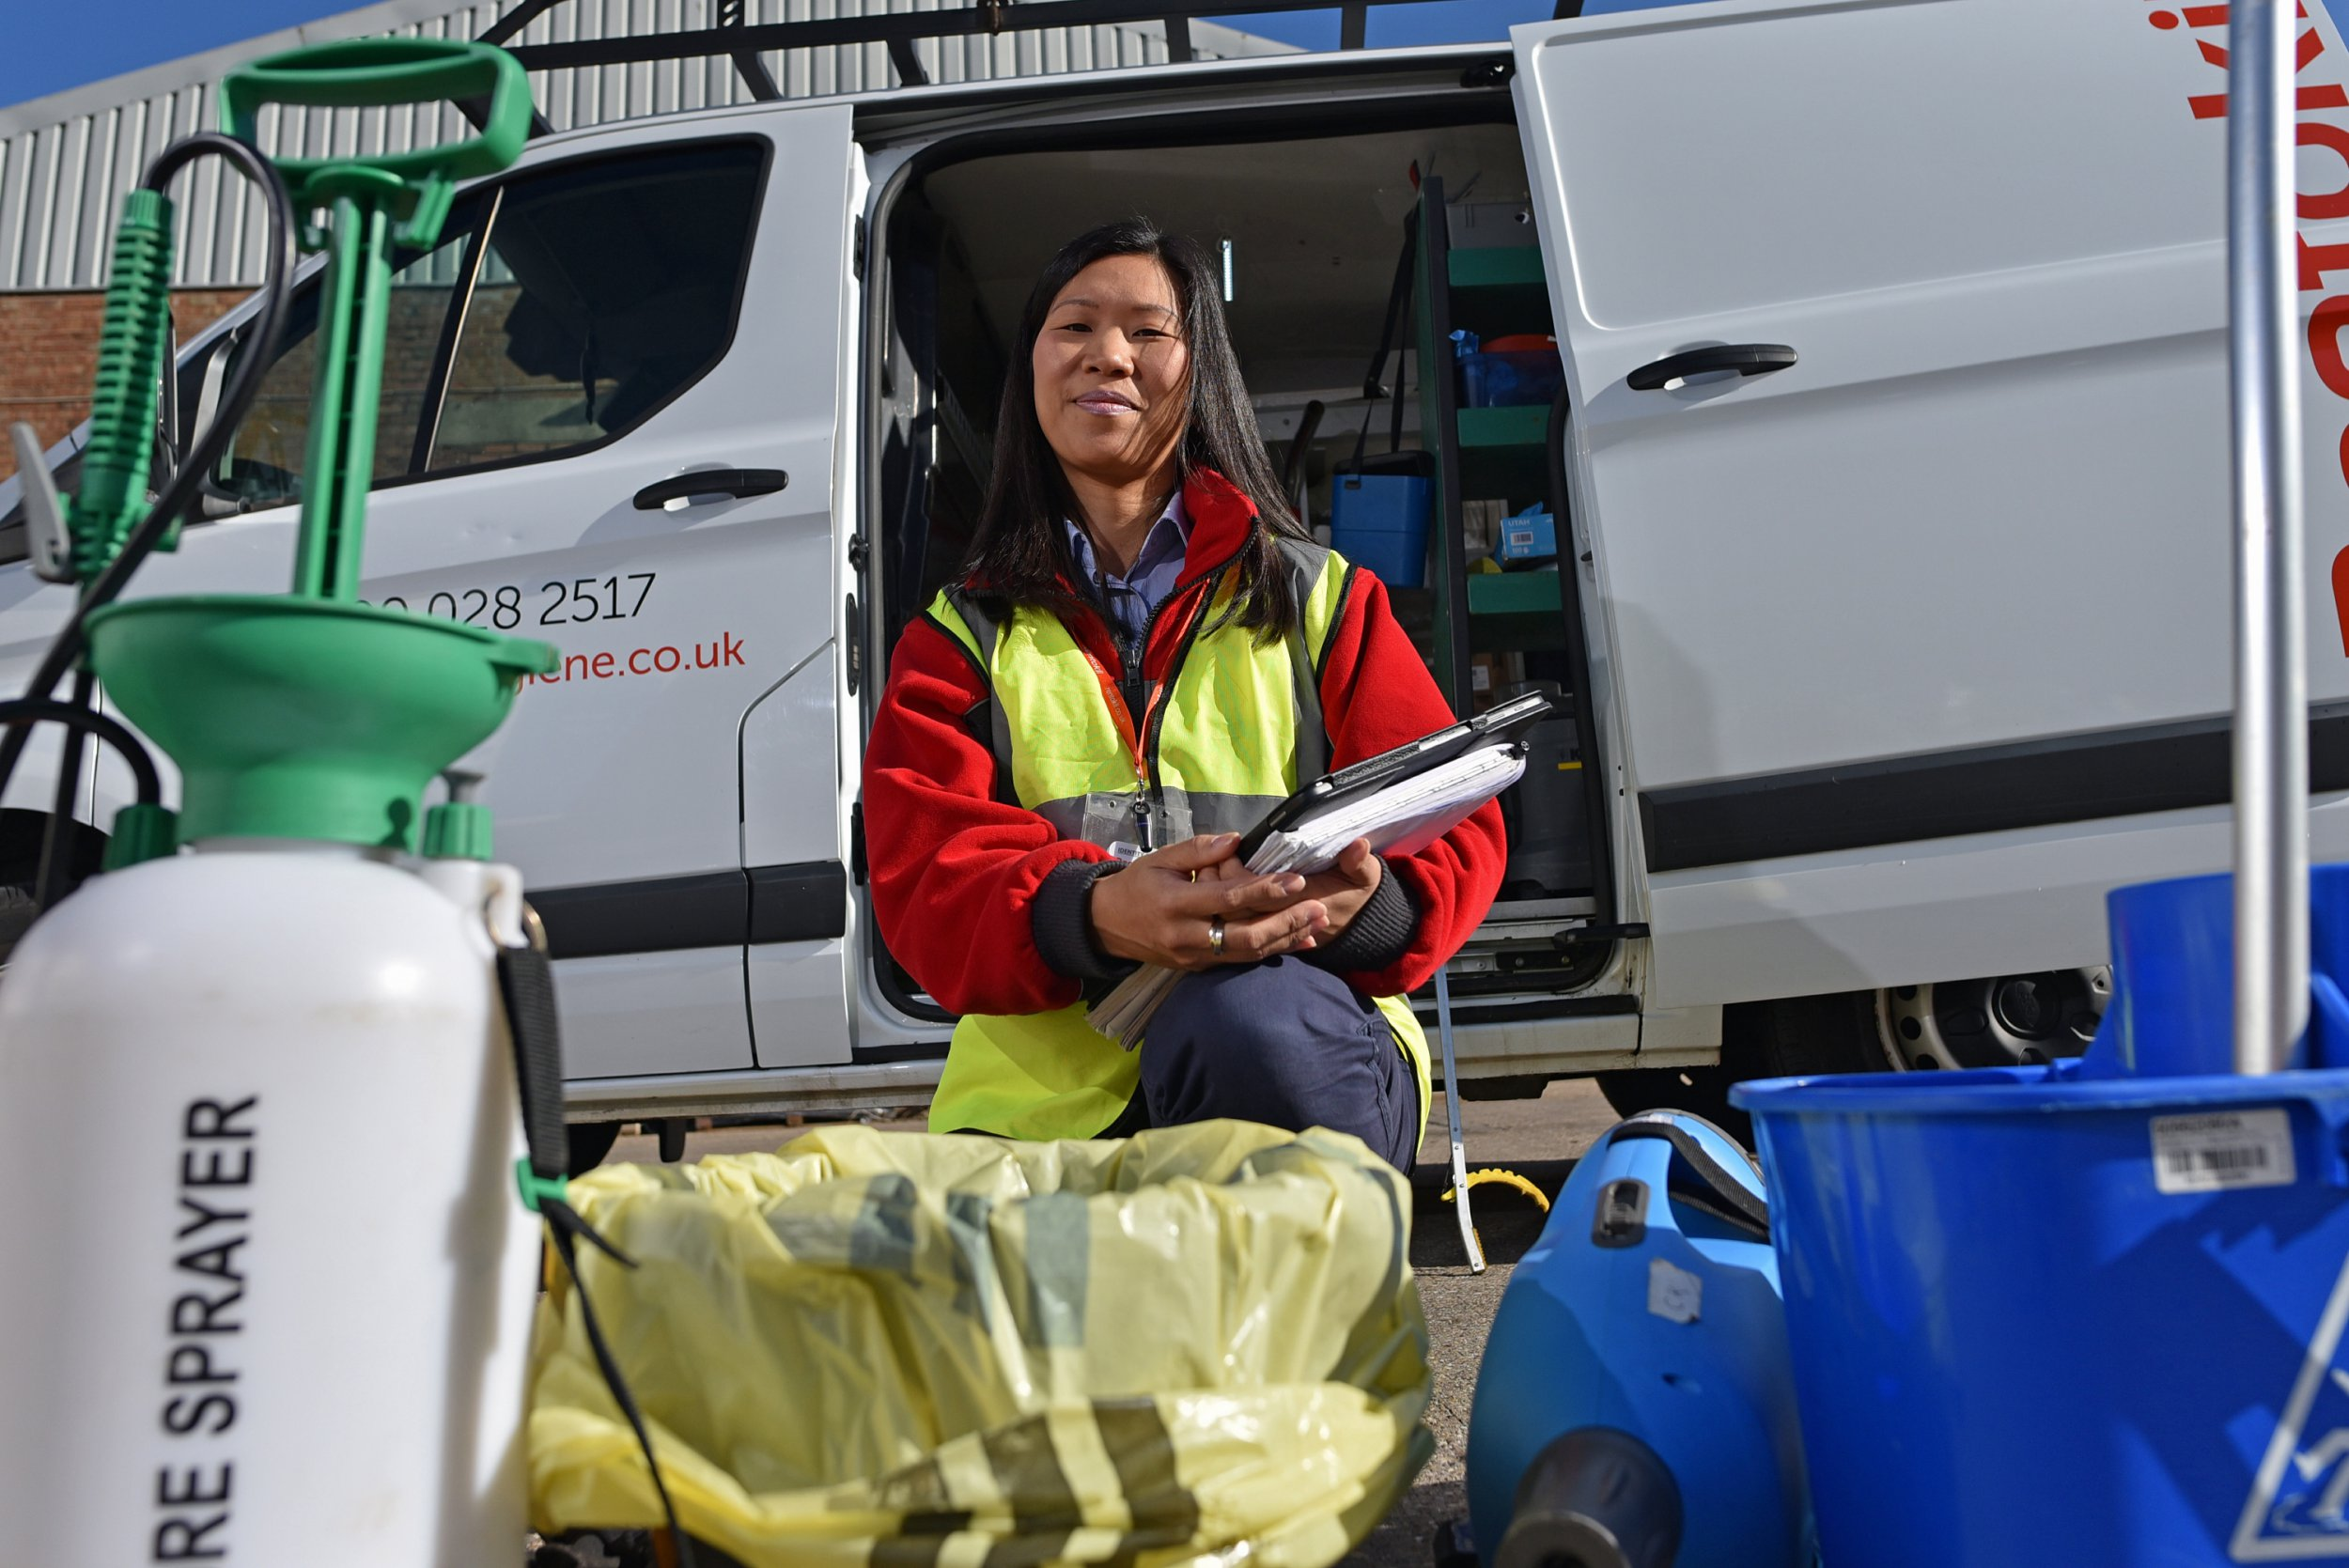 My Odd Job. Patricia Whan-Hatfield, pictured, of Rentokil, Birmingham, she cleans up unusual situations like crime scenes and hoarders' homes.